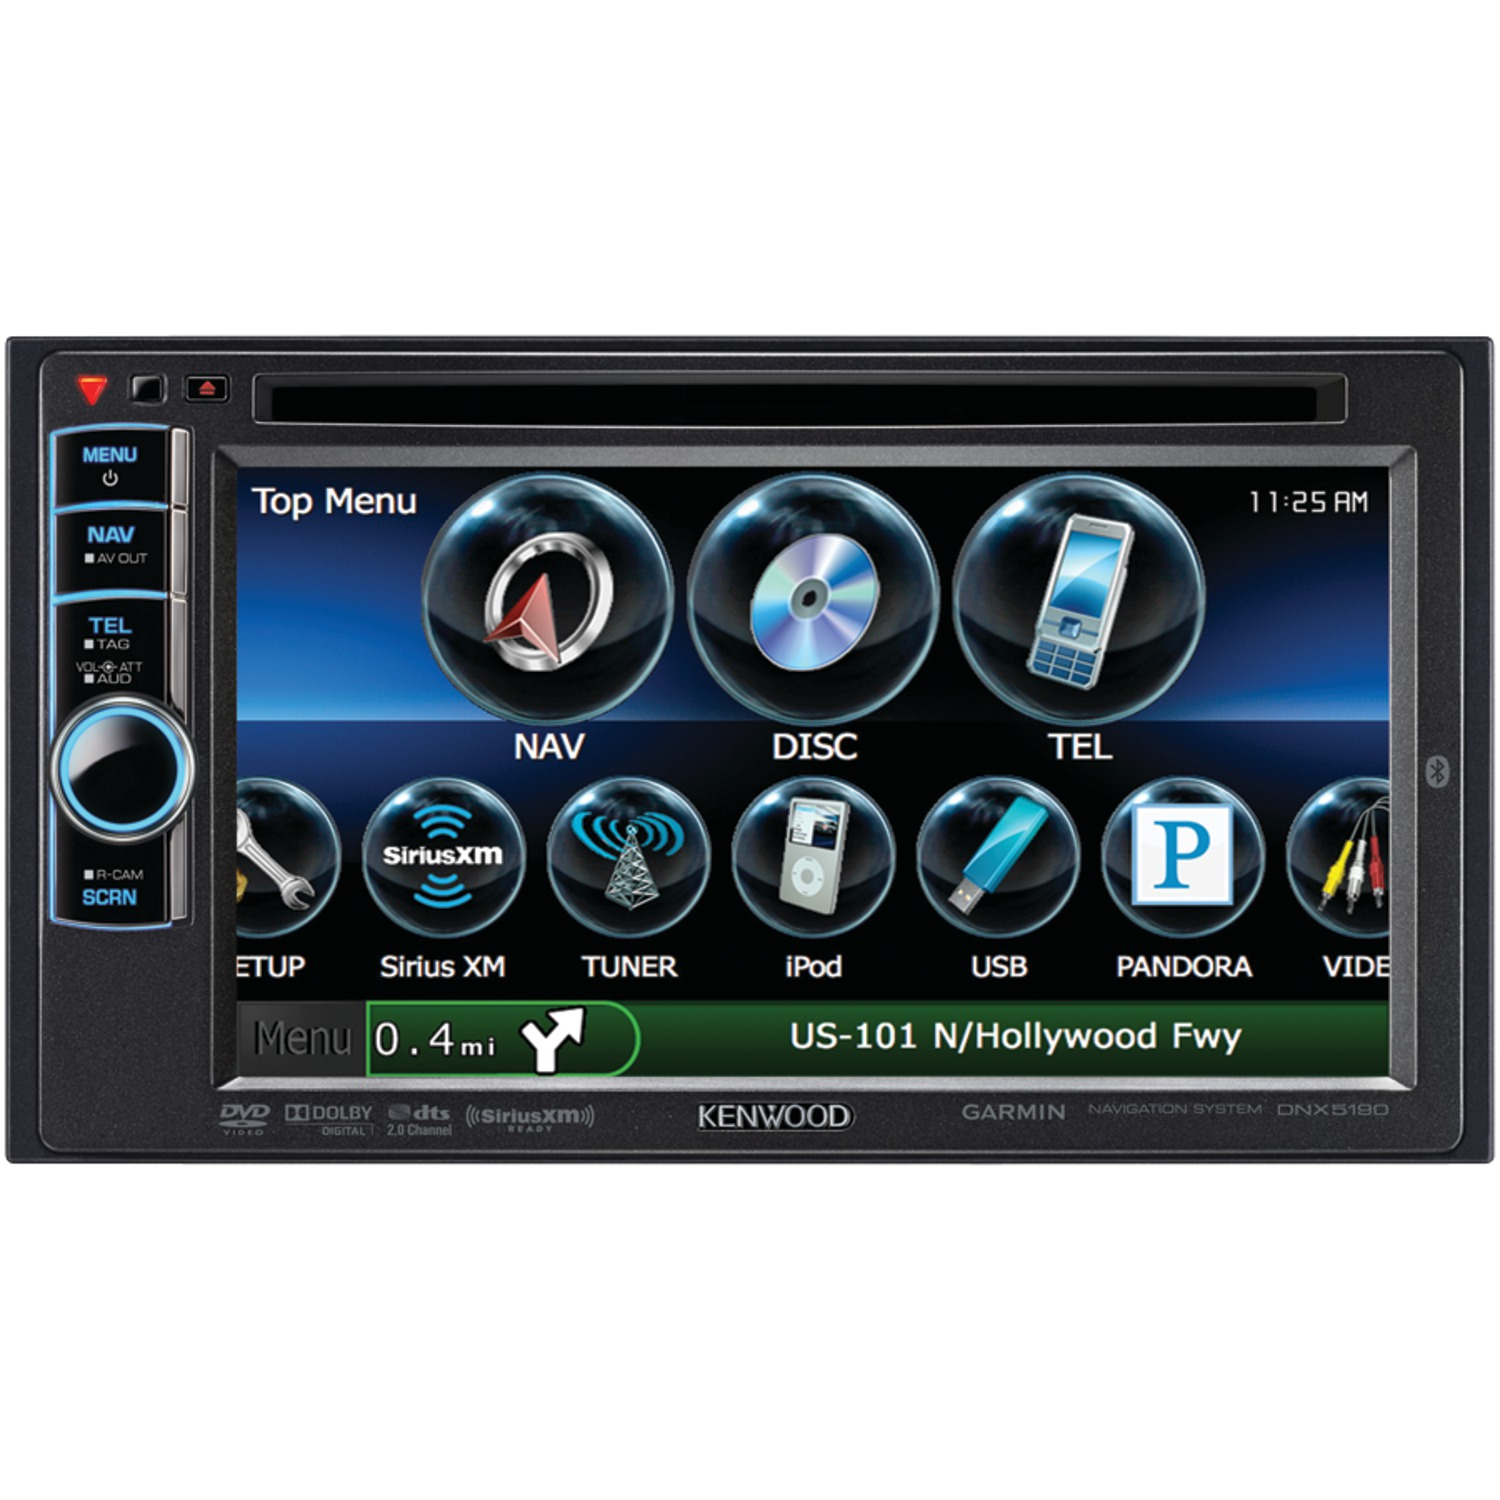 """KENWOOD DNX5190 6.1"""" Double-DIN In-Dash Navigation Receiver with DVD &  Bluetooth(R) - Walmart.com"""